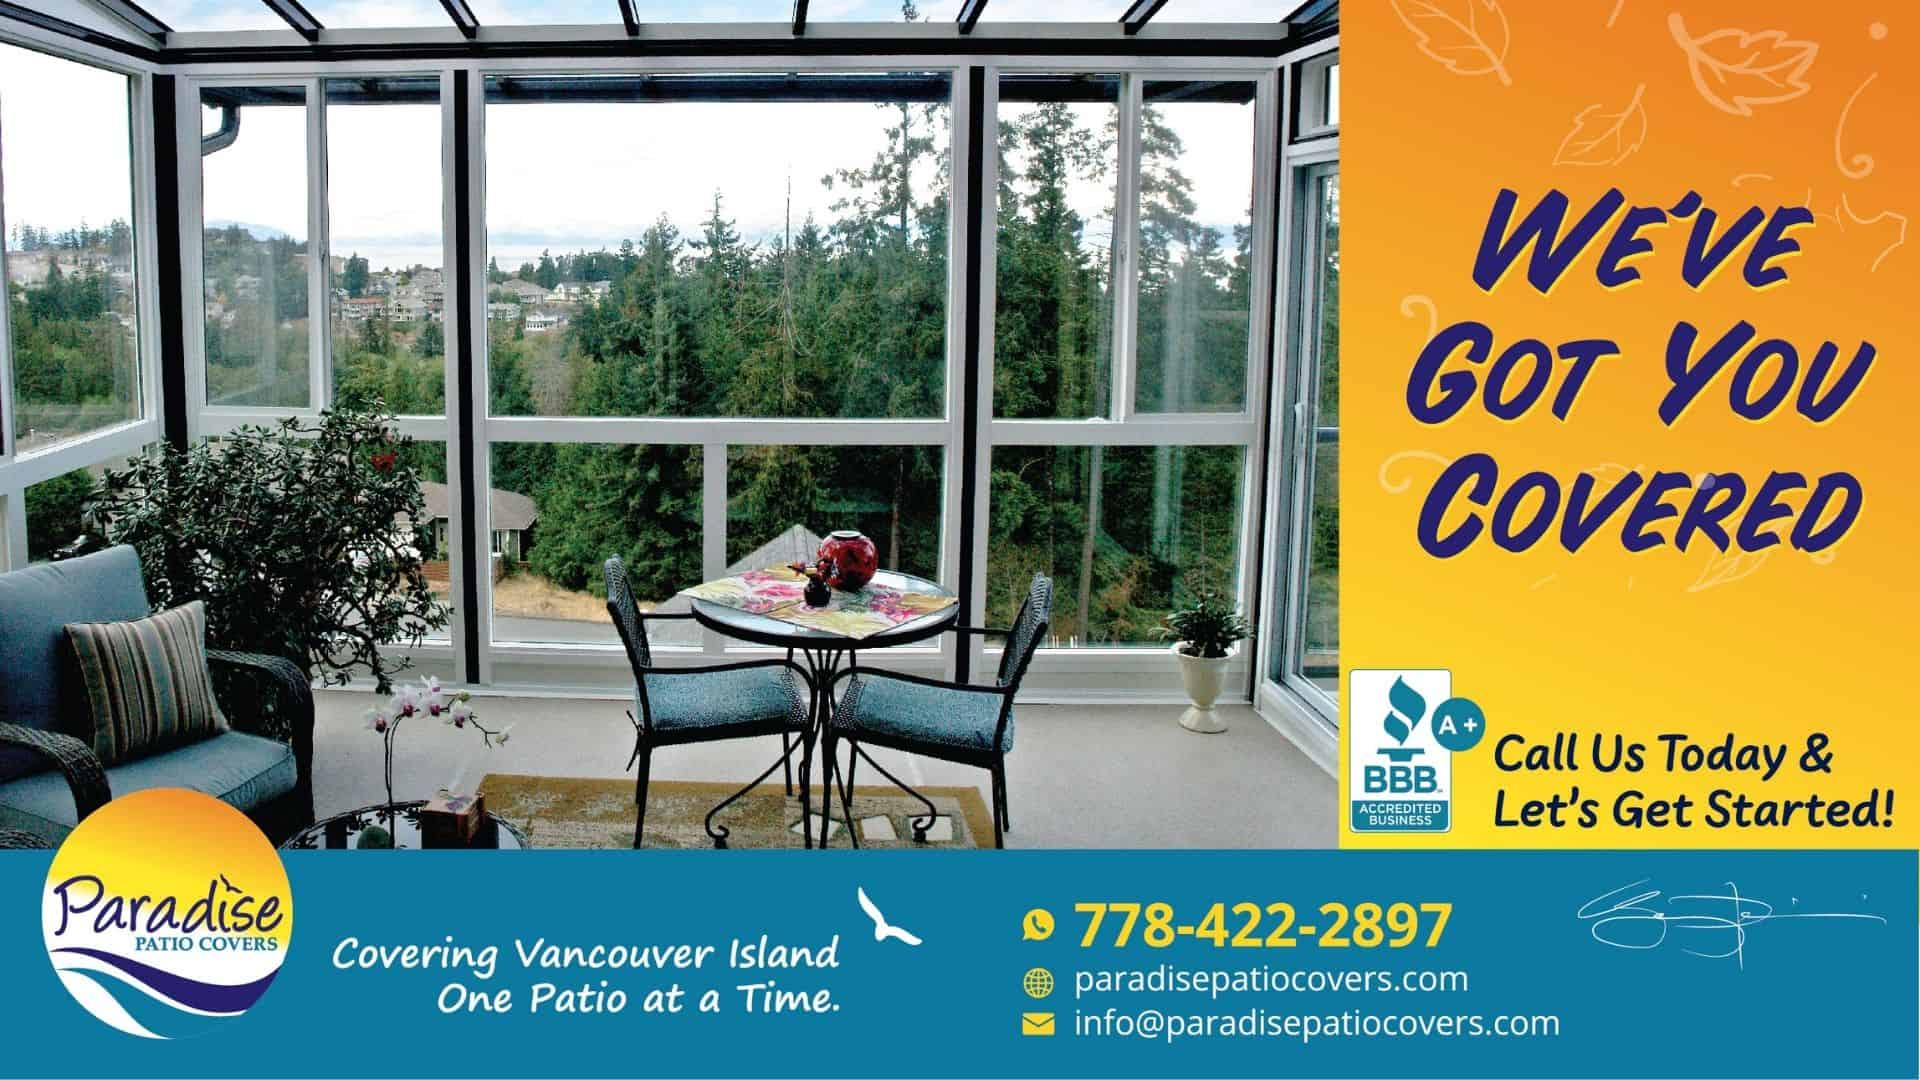 paradise patio covers - we've got you covered